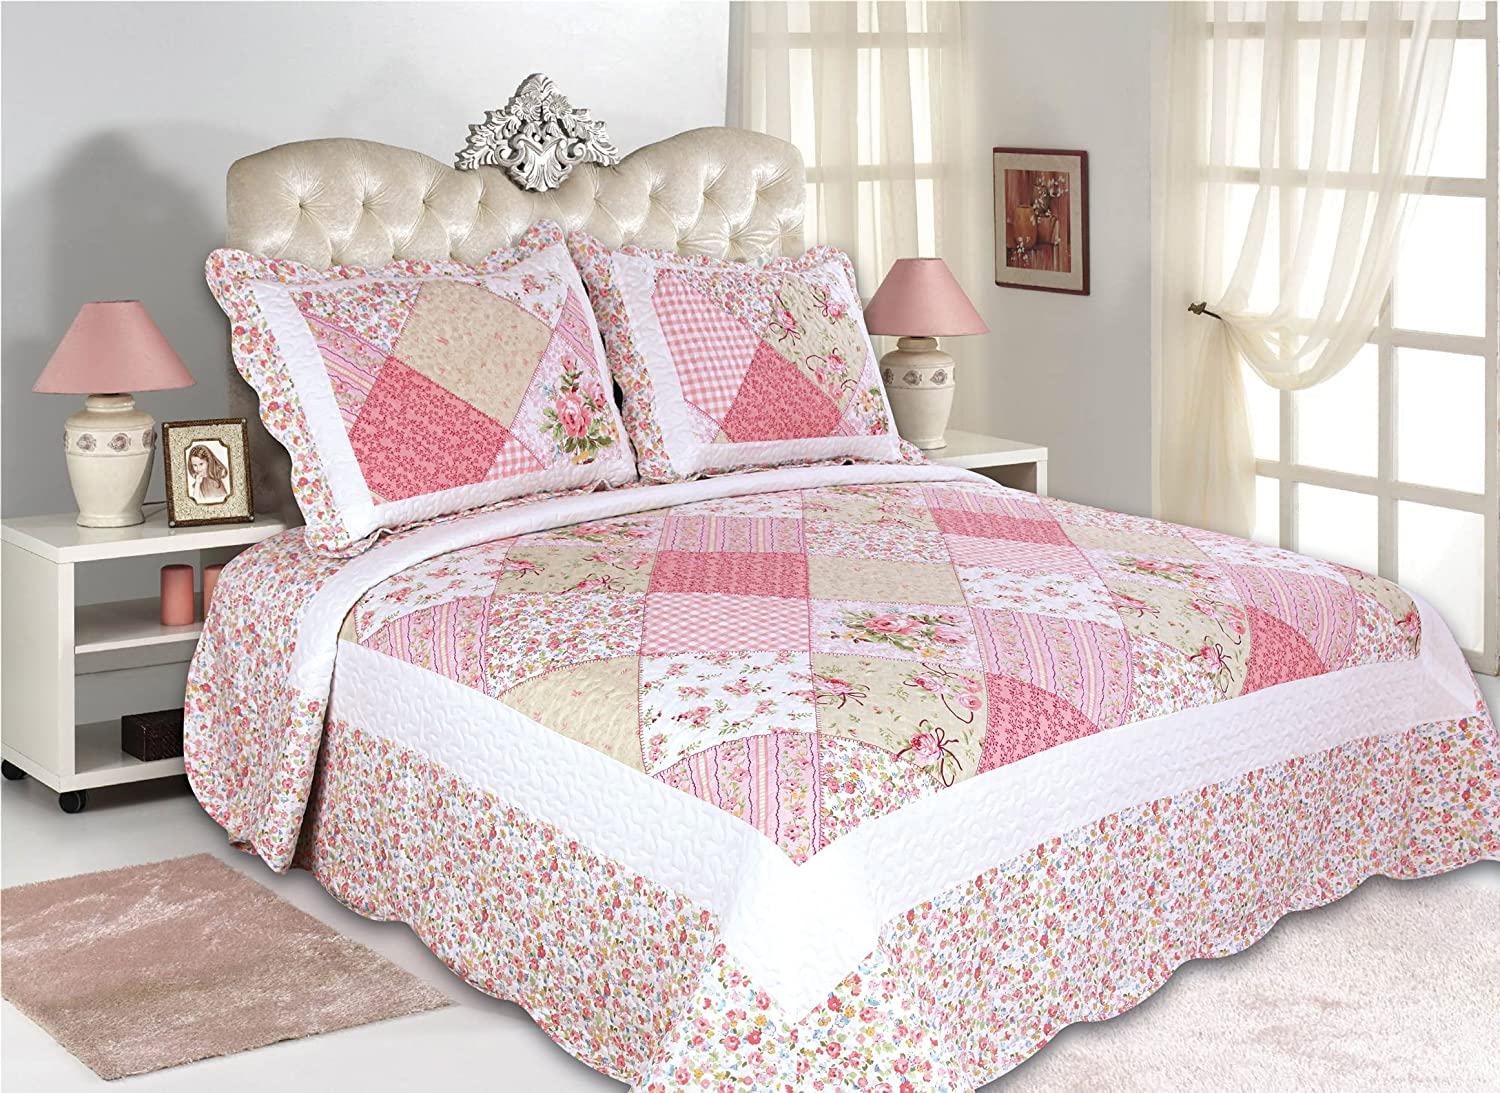 ALL FOR YOU 3-Piece Reversible Bedspread/Quilt Set-King Size-Pink Patchwork Prints